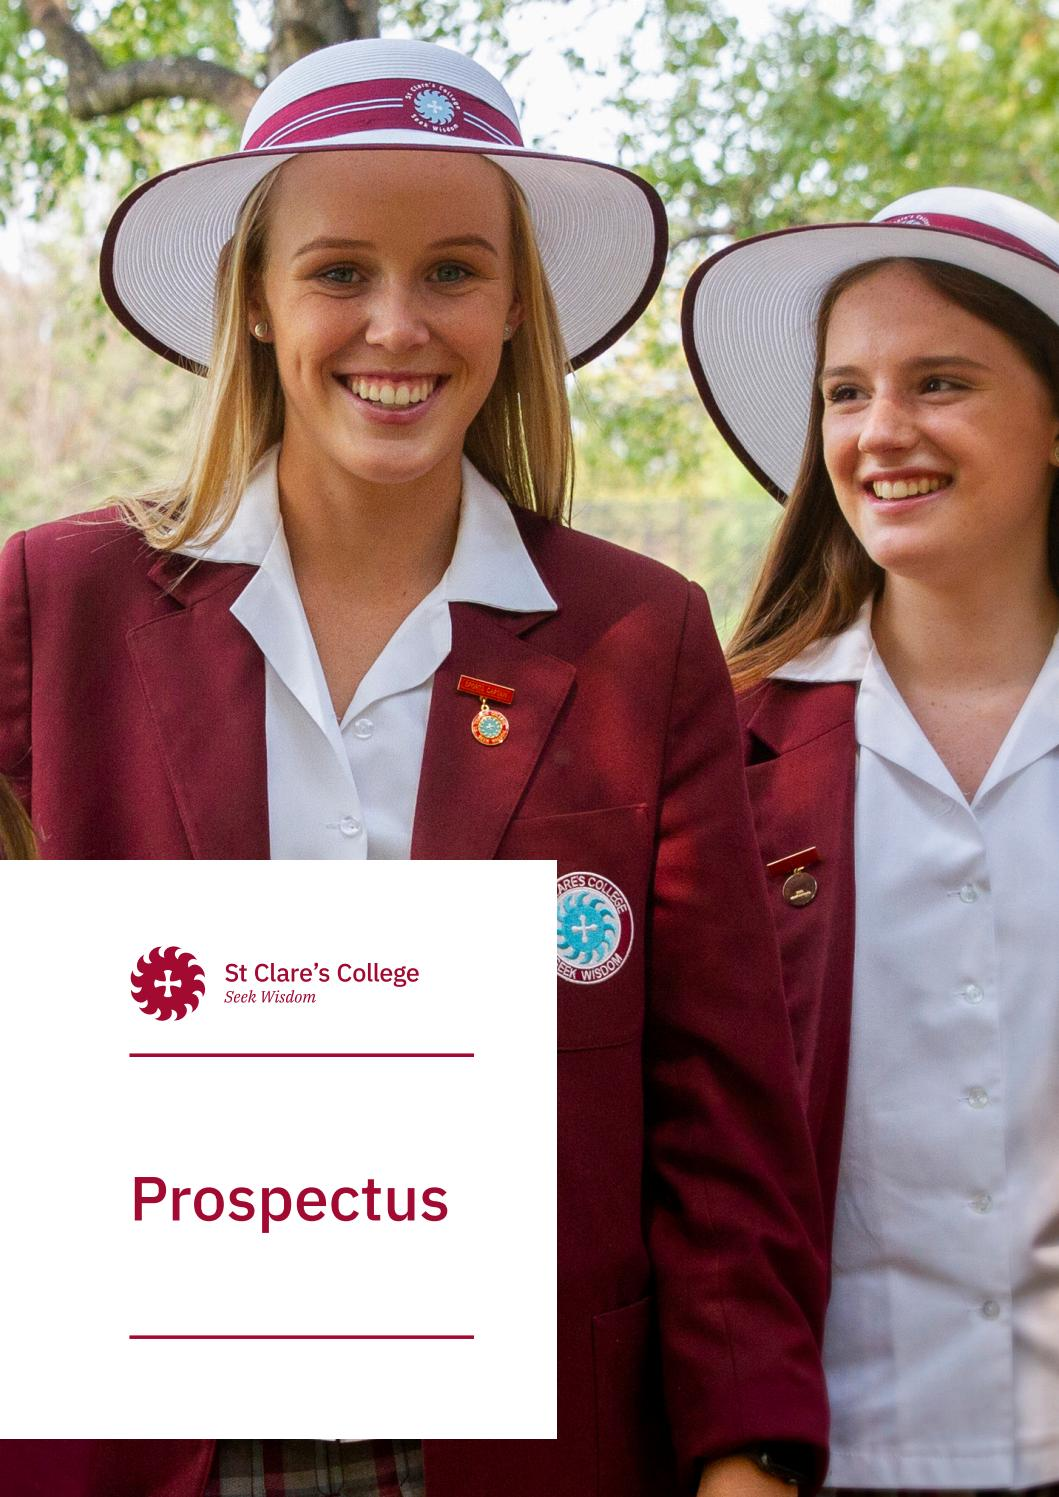 See our Prospectus